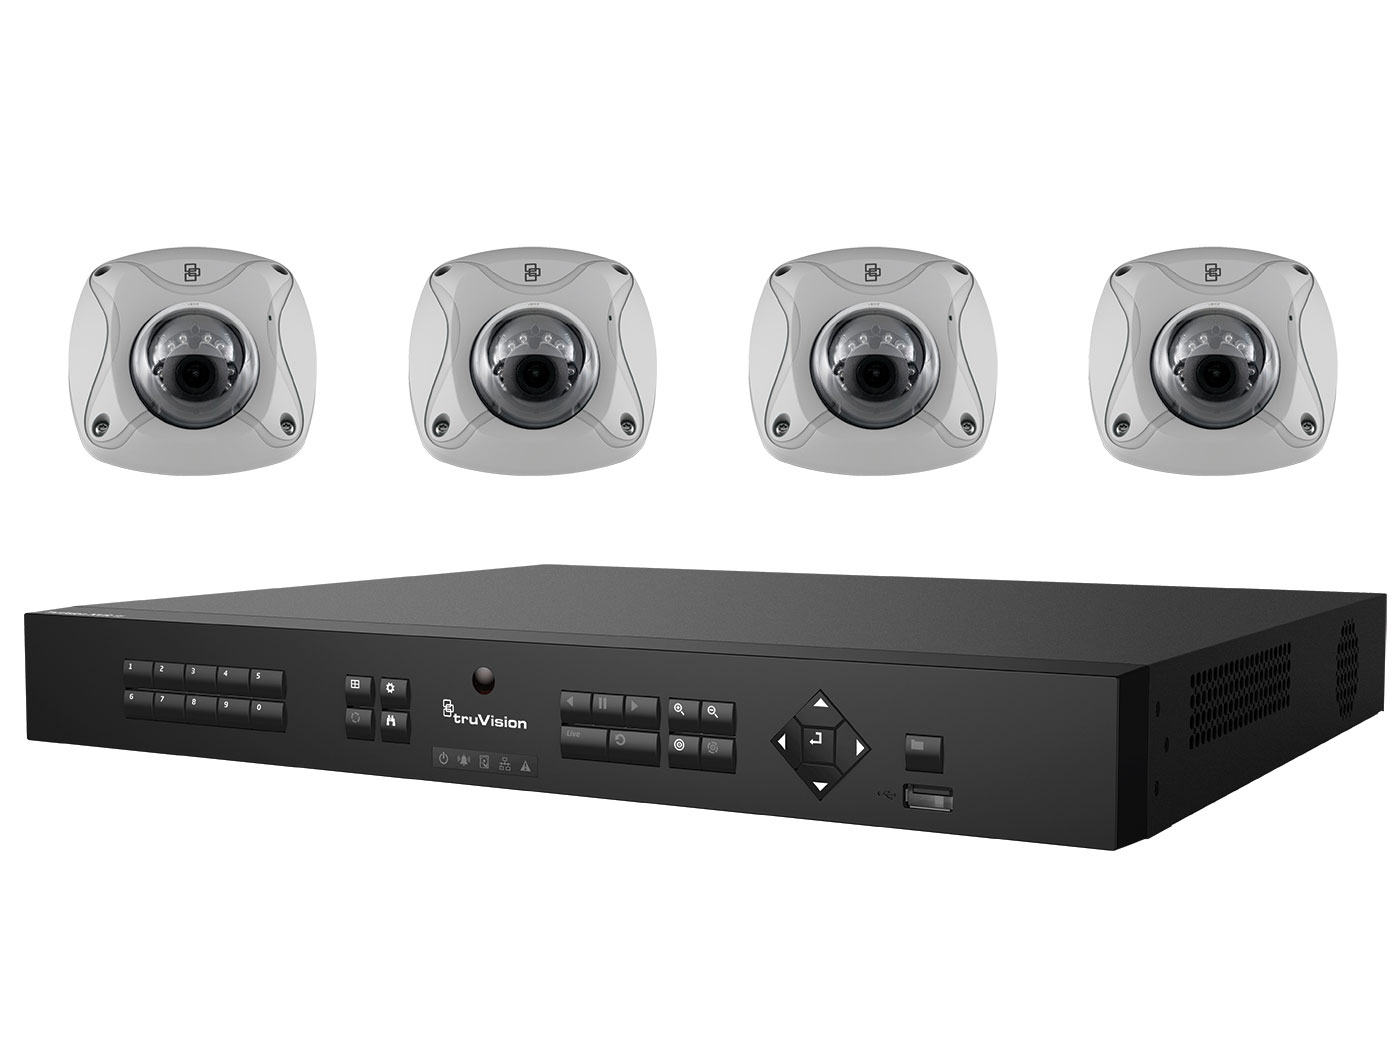 TVN-1108-KW2 INTERLOGIX 8-Channel NVR w/4 2MPx (2.8mm) IR Wedge Cameras Video Kit ************************* SPECIAL ORDER ITEM NO RETURNS OR SUBJECT TO RESTOCK FEE *************************